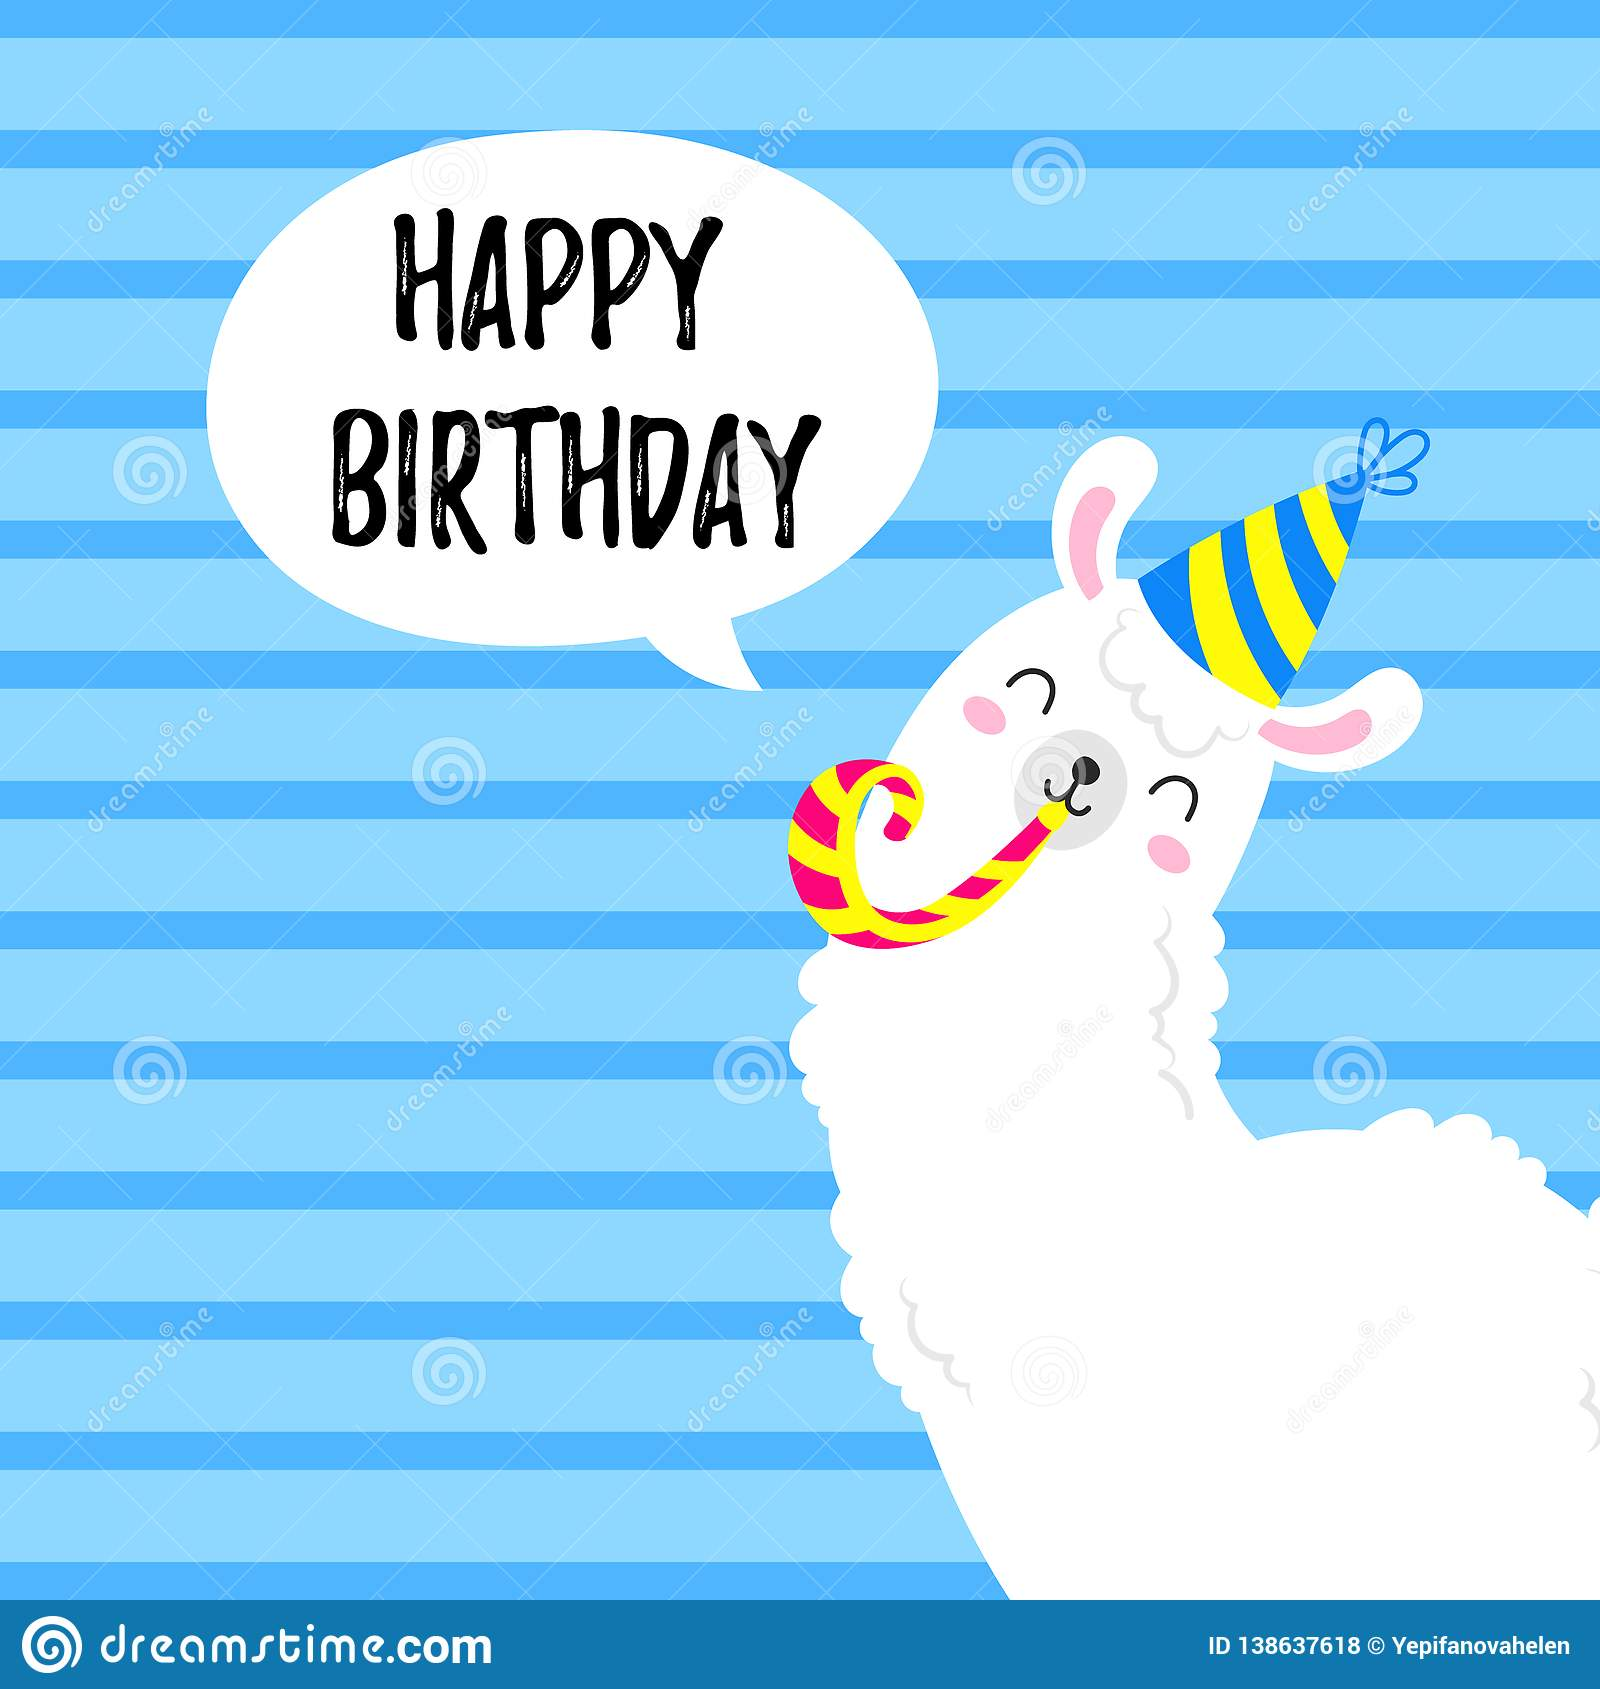 Birthday Vector Cartoon Greeting Card Design Doodle Illustration Template Background For Print